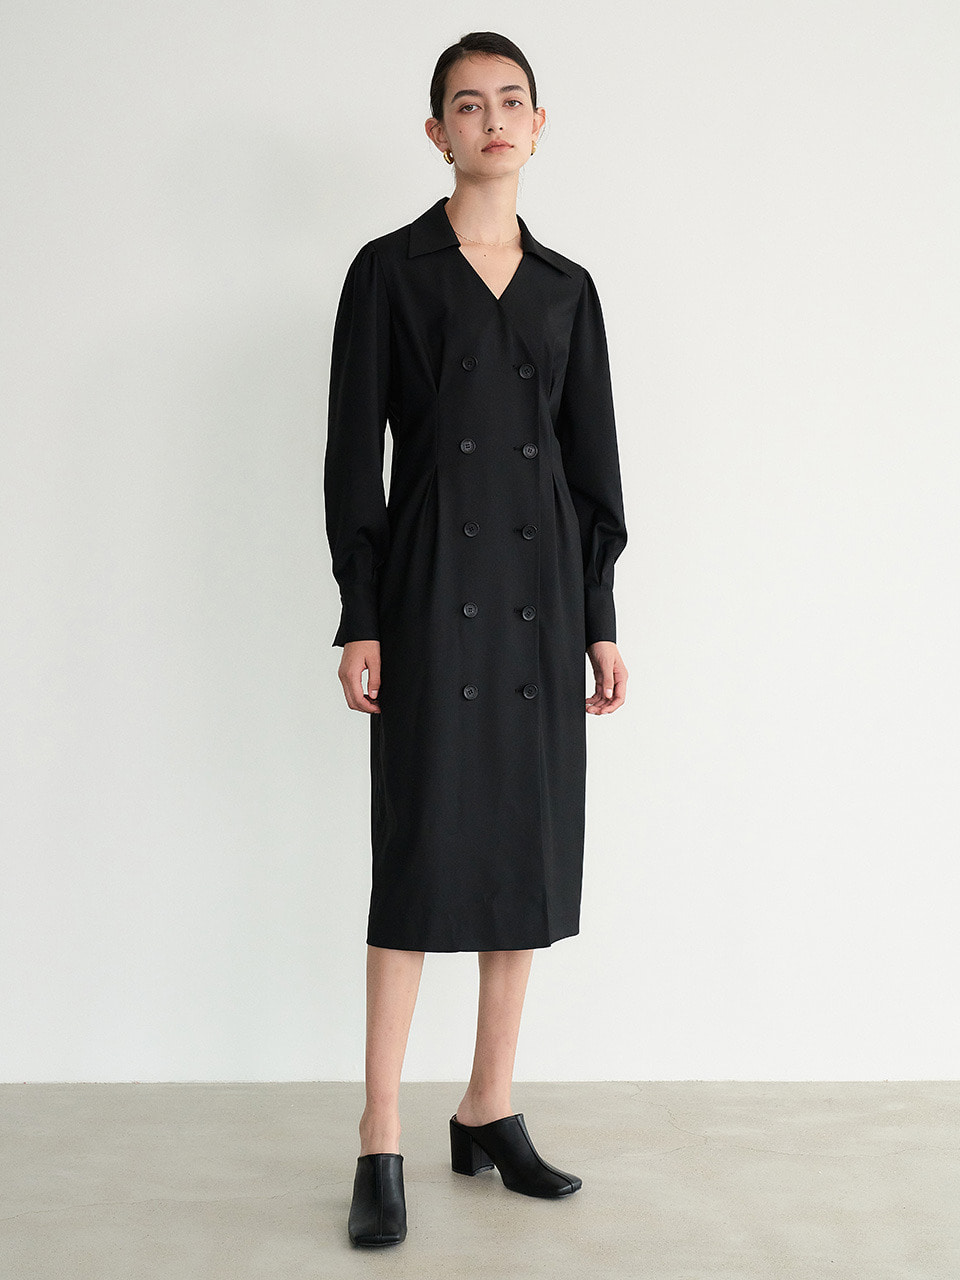 004 Double-breasted Jacket Dress (Black)